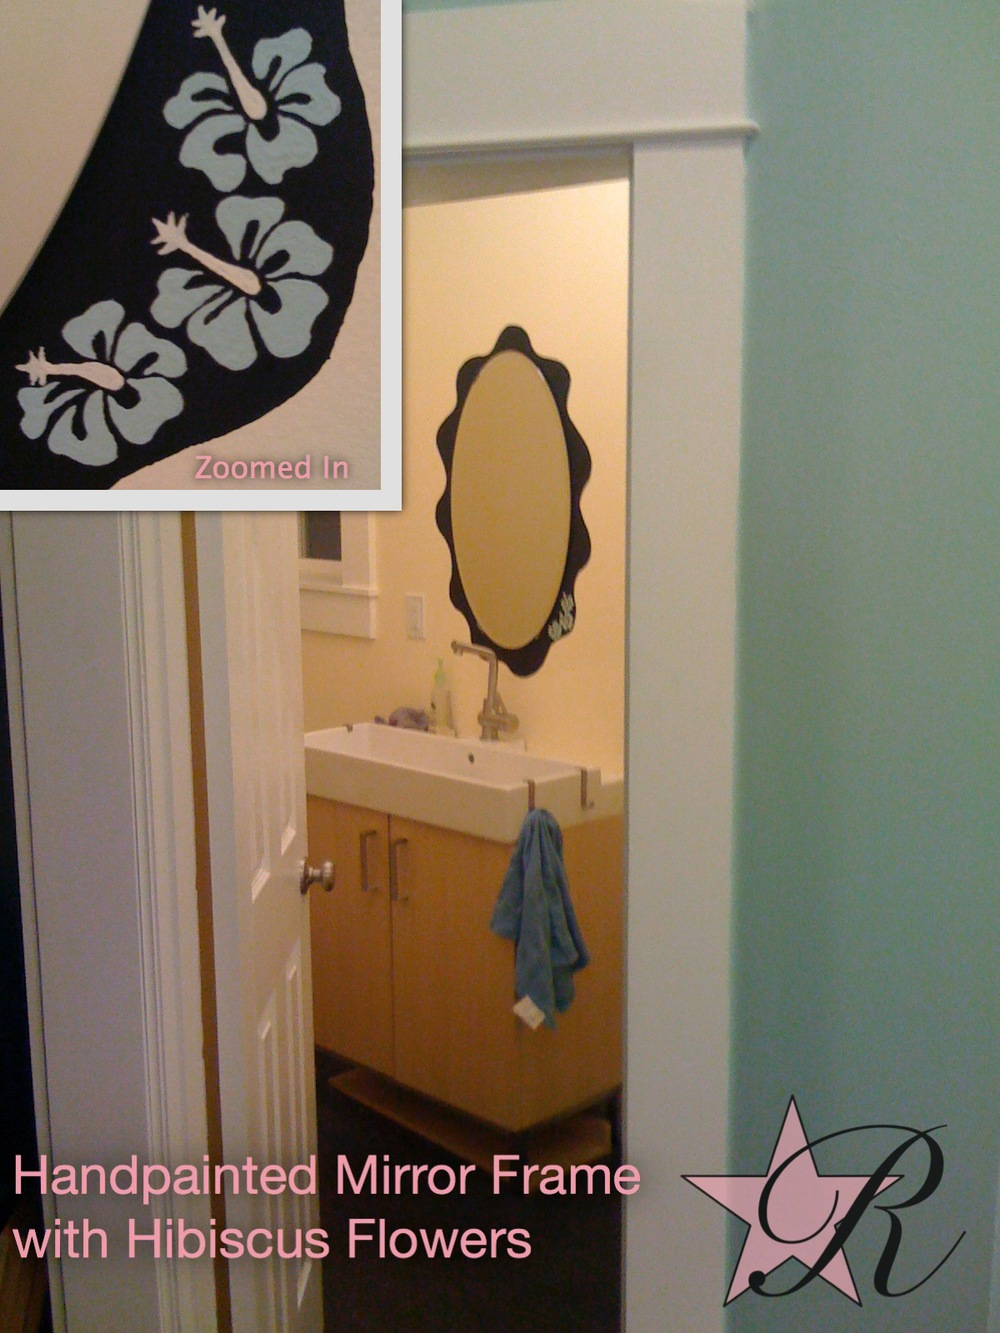 While painting the interior of this house, Rockstar Remodel gave the bathroom mirror a hand-painted frame with hibiscus flowers matching the wall paint on the lower righthand corner.